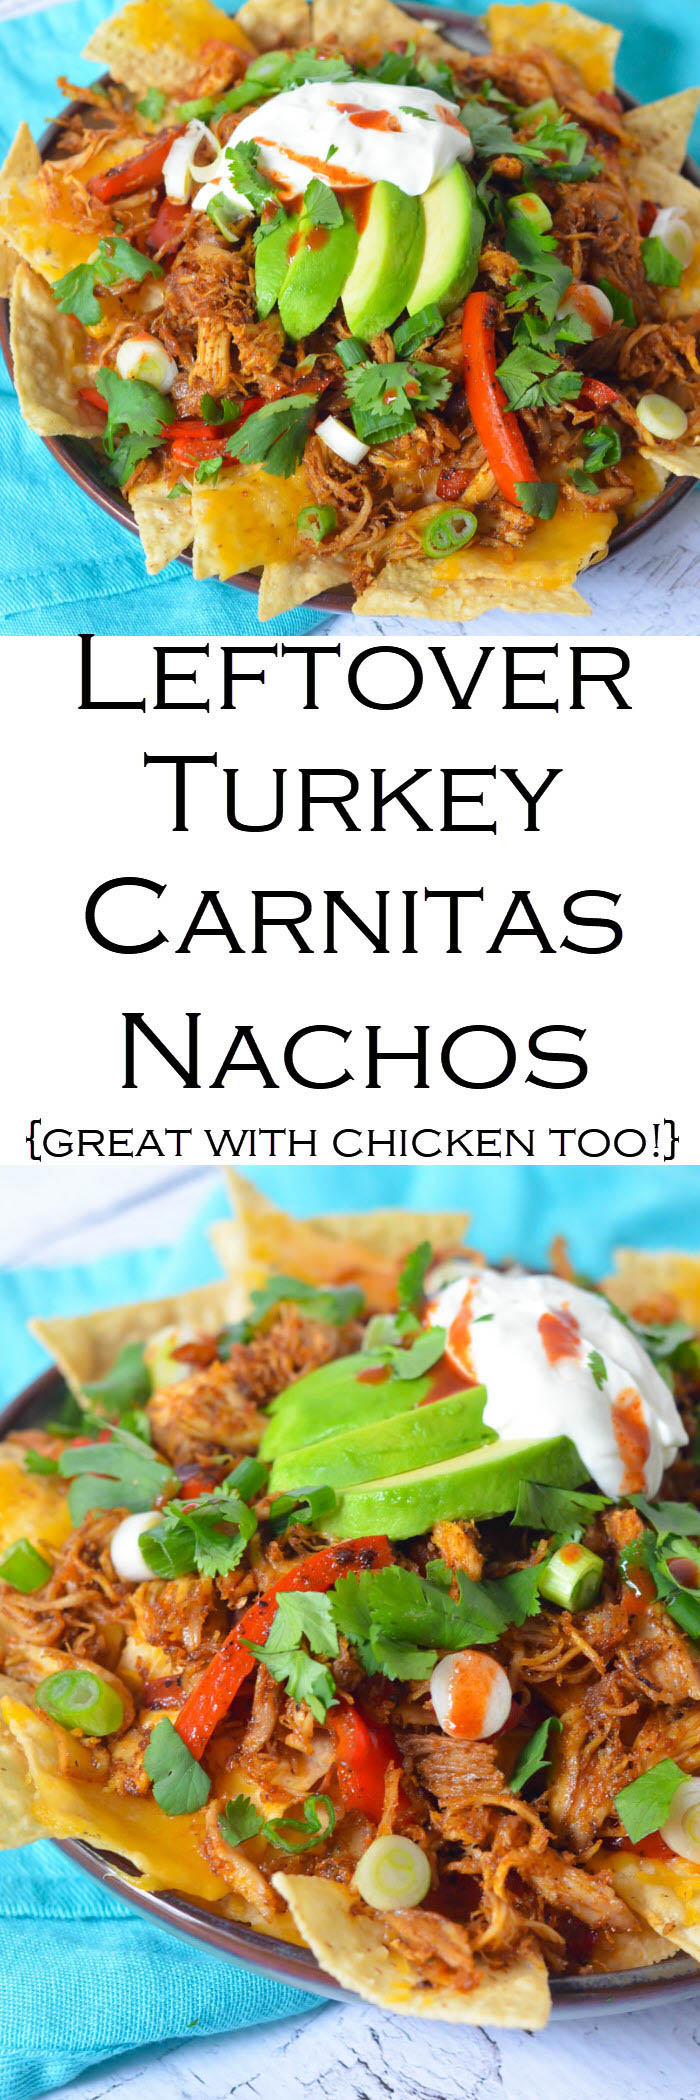 Leftover Turkey Carnitas Recipe #LMrecipes #turkey #carnitas #thanksgiving #thanksgivingleftovers #mexicanfood #foodblog #foodblogger